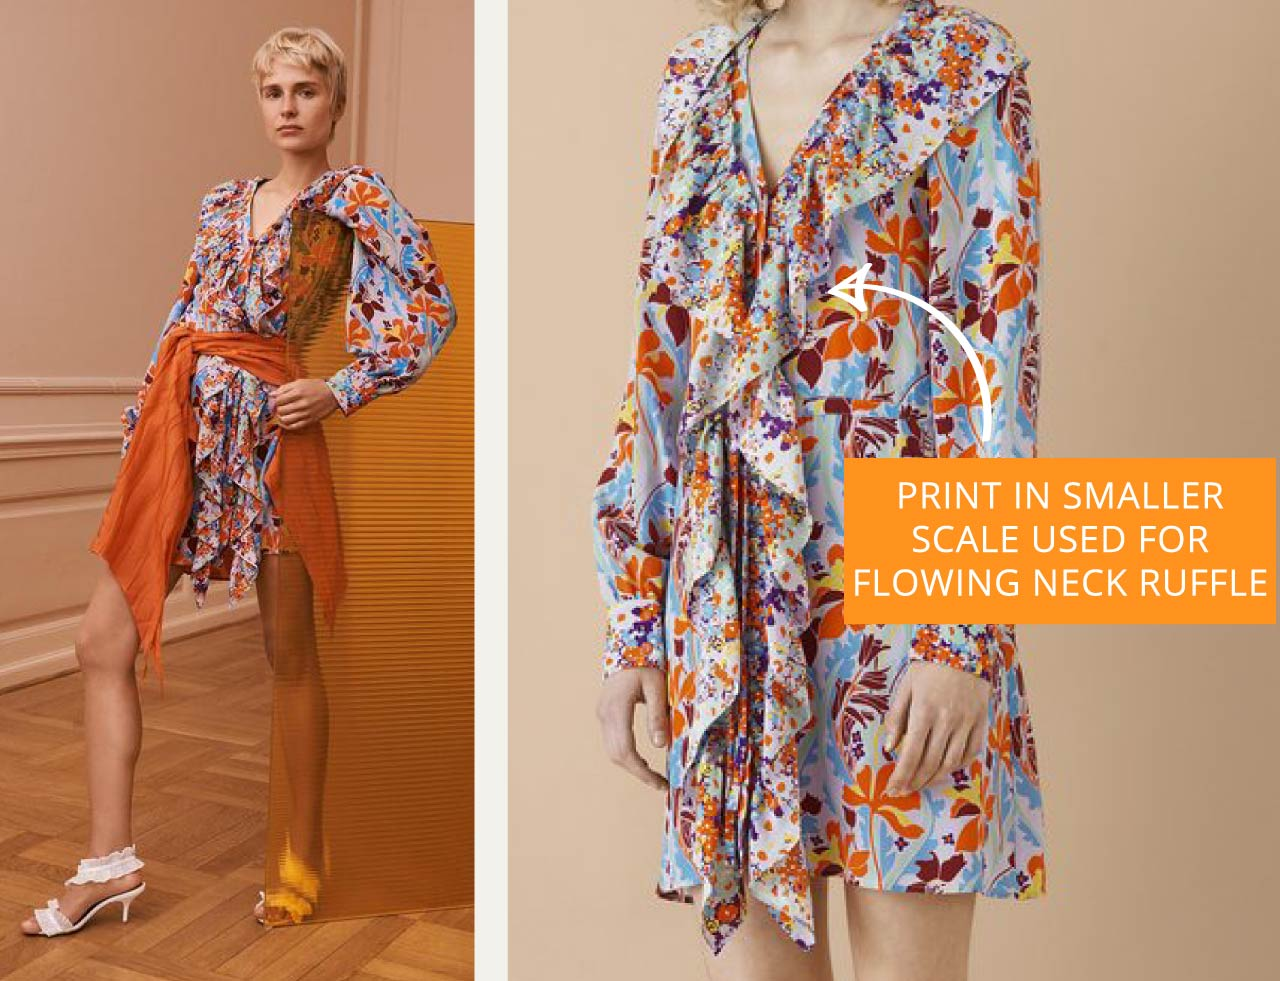 Details in Floral Prints at Stine Goya PF19 - The Cutting Class. Floral print ruffle on neckline.